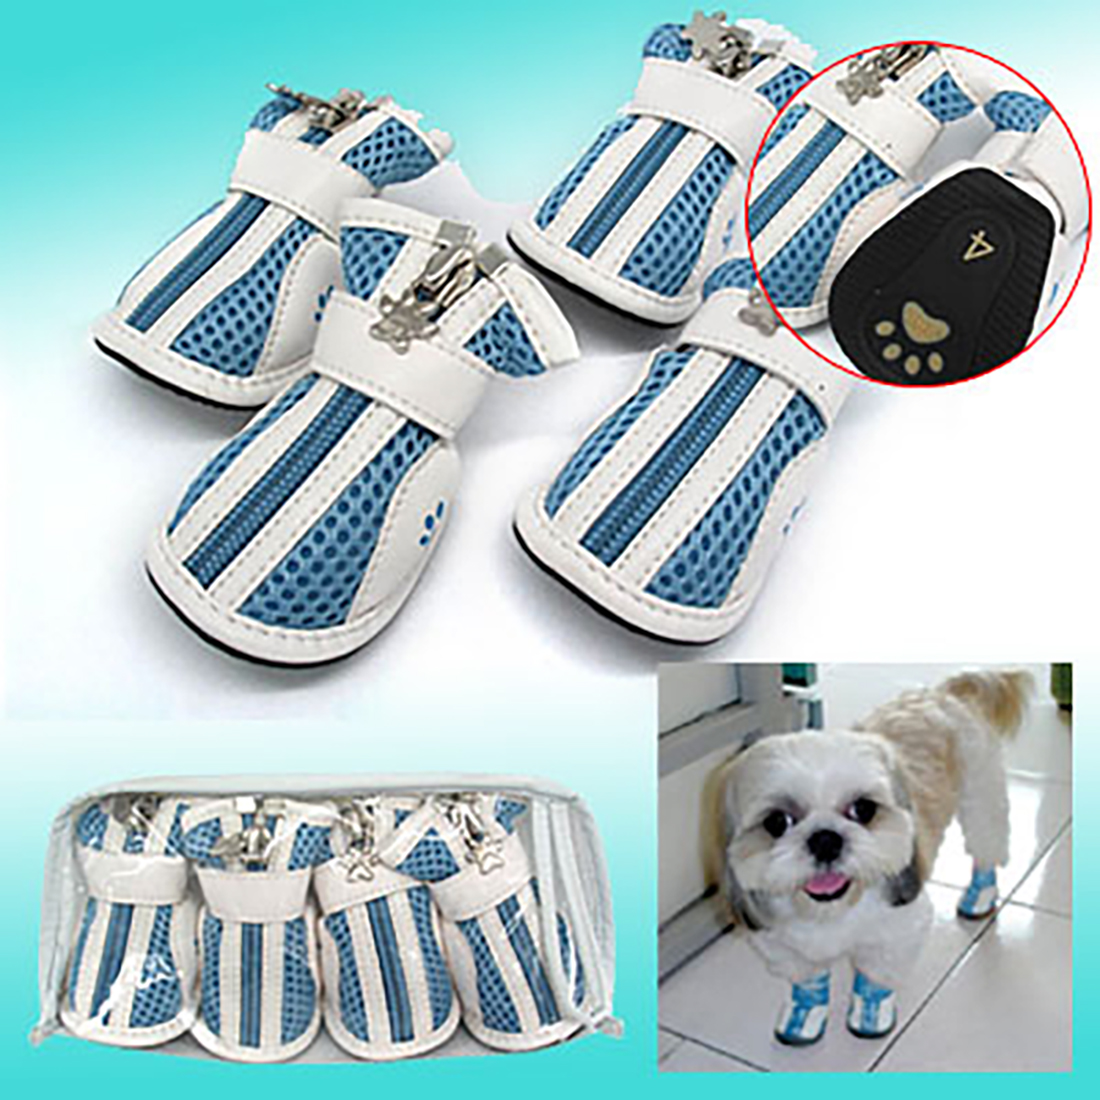 Light Blue Anti-Slip Fashion Small Protective Dog Paw Booties Pet Boots Shoes #4